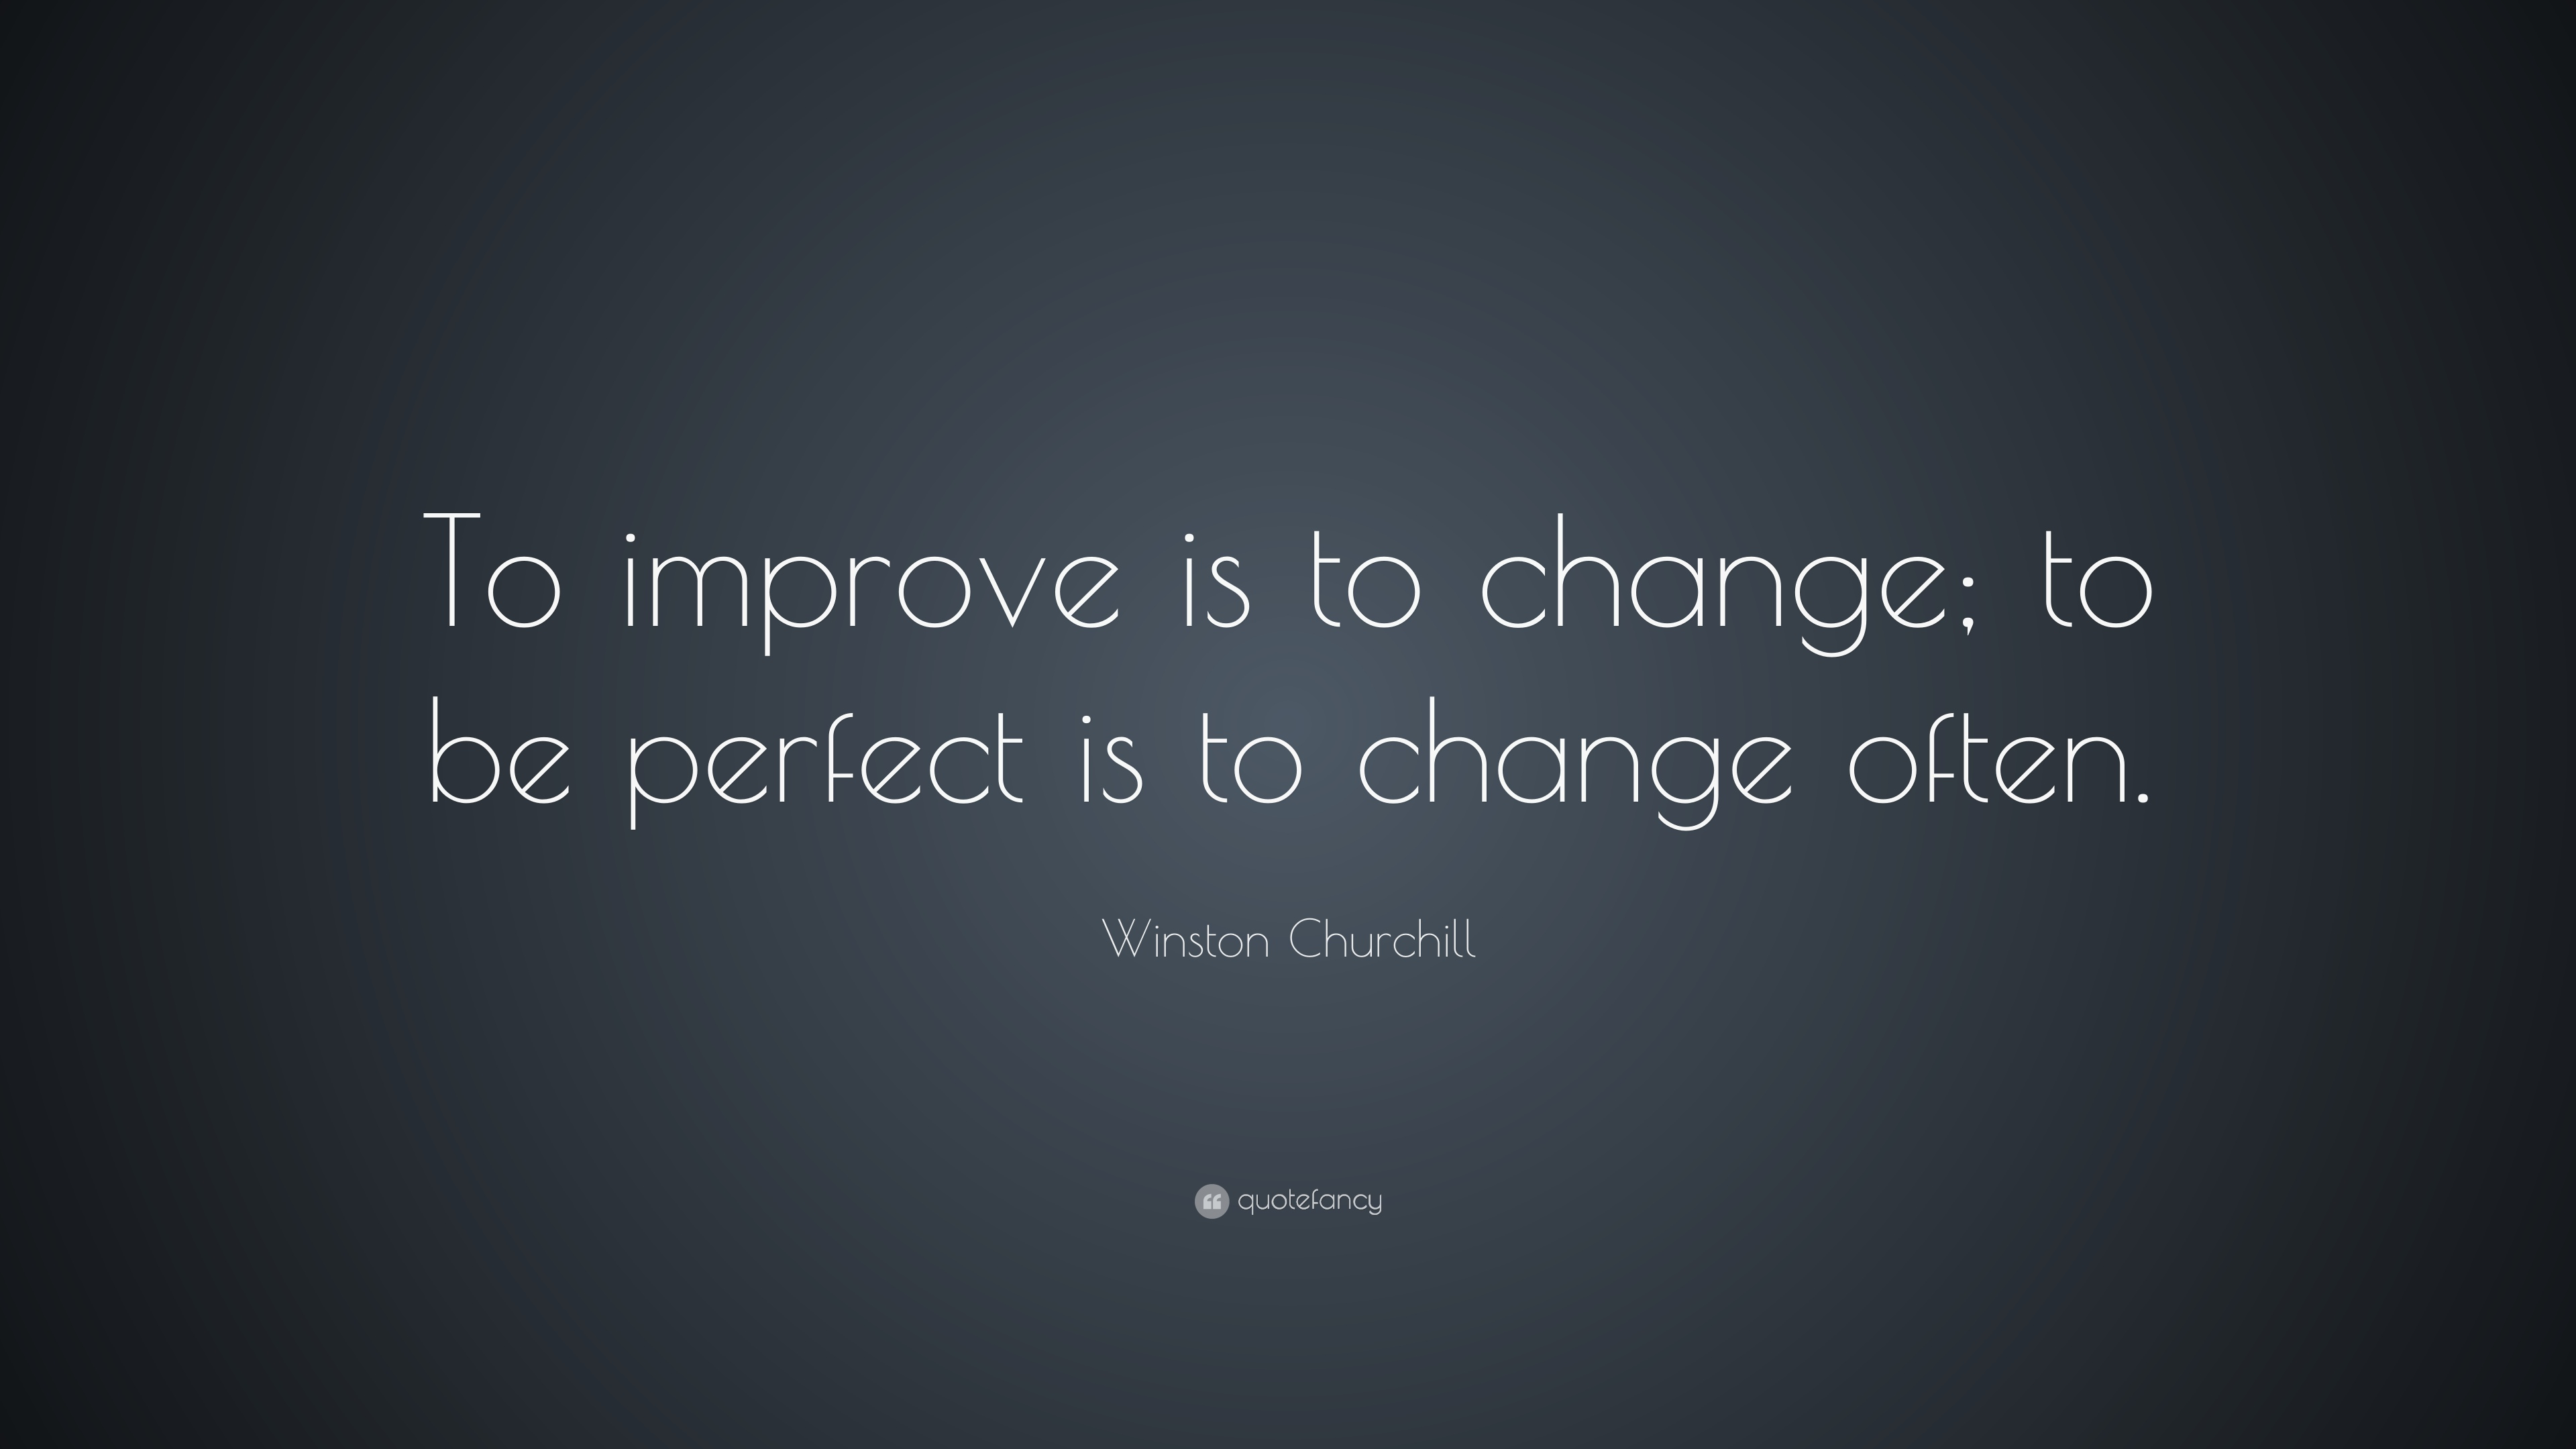 Quotes Of Change Change Quotes 40 Wallpapers  Quotefancy